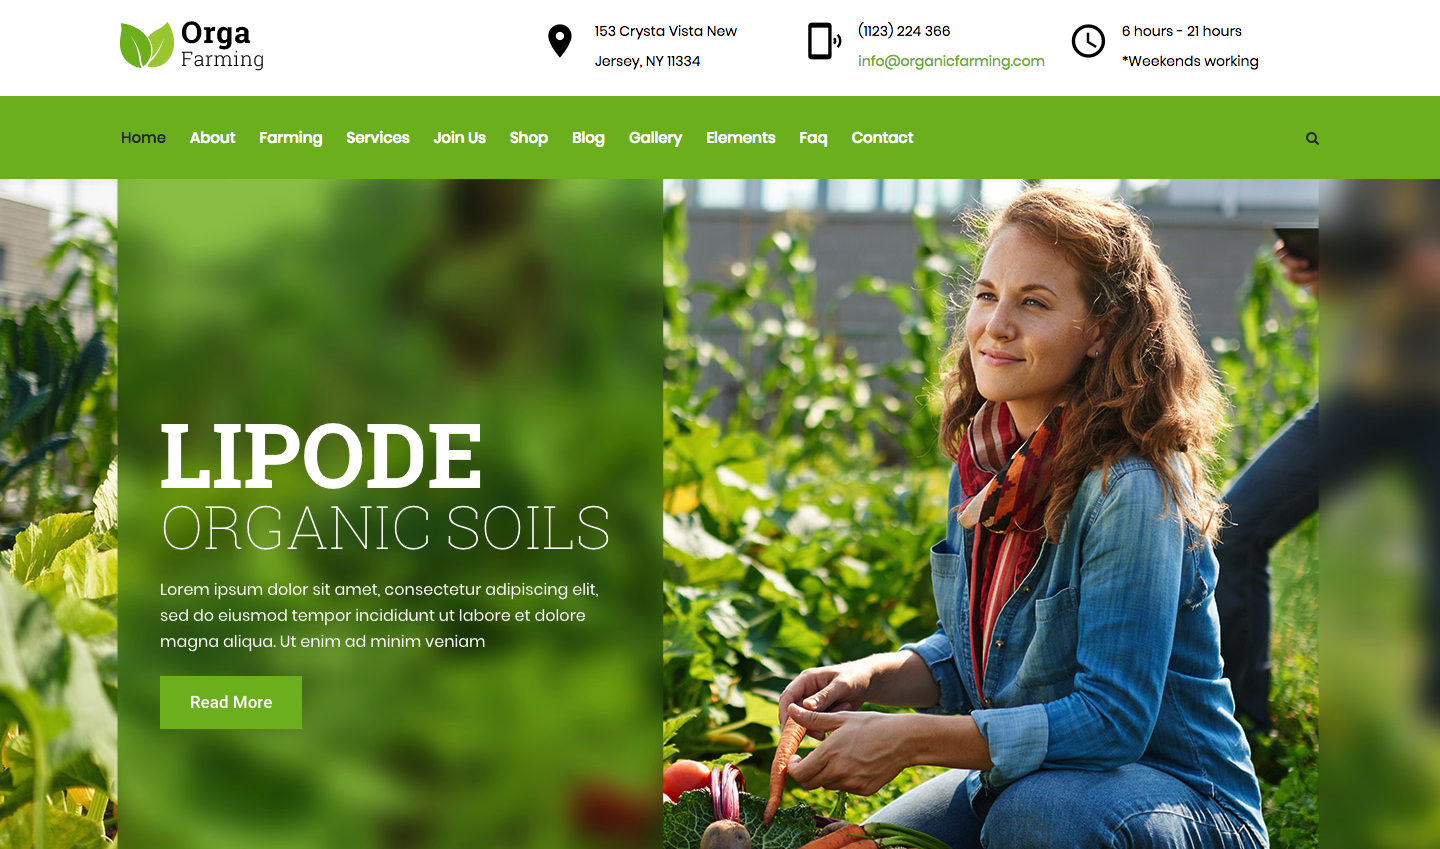 Orga Farm - Organic Food, Organic Farm WordPress Theme.png